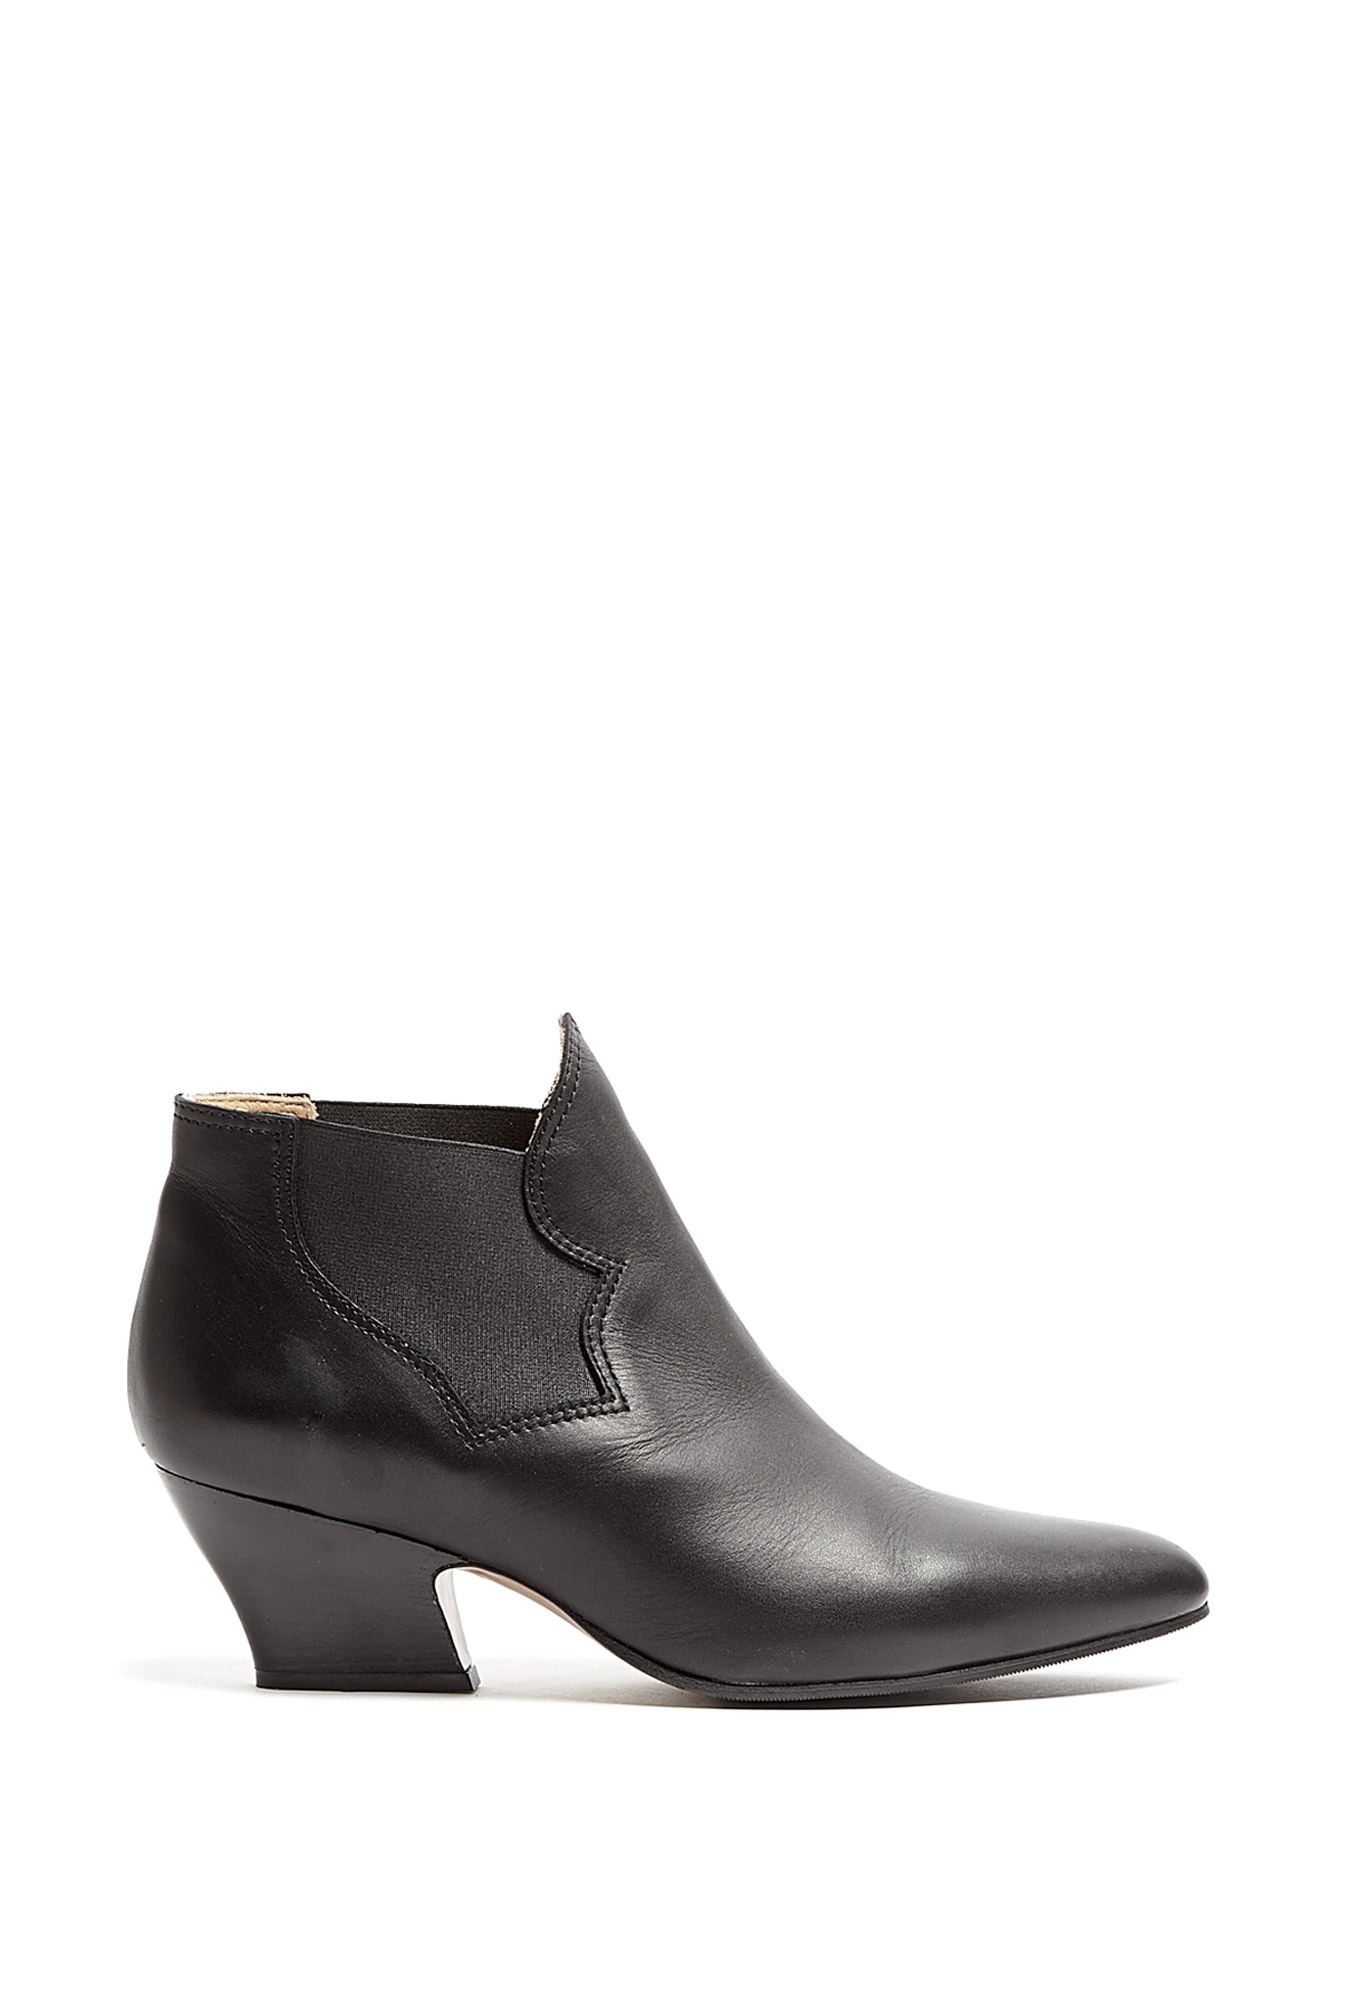 Acne Studios | Black Alma Mid Heel Pull On Leather Ankle Boot by Acne Studios